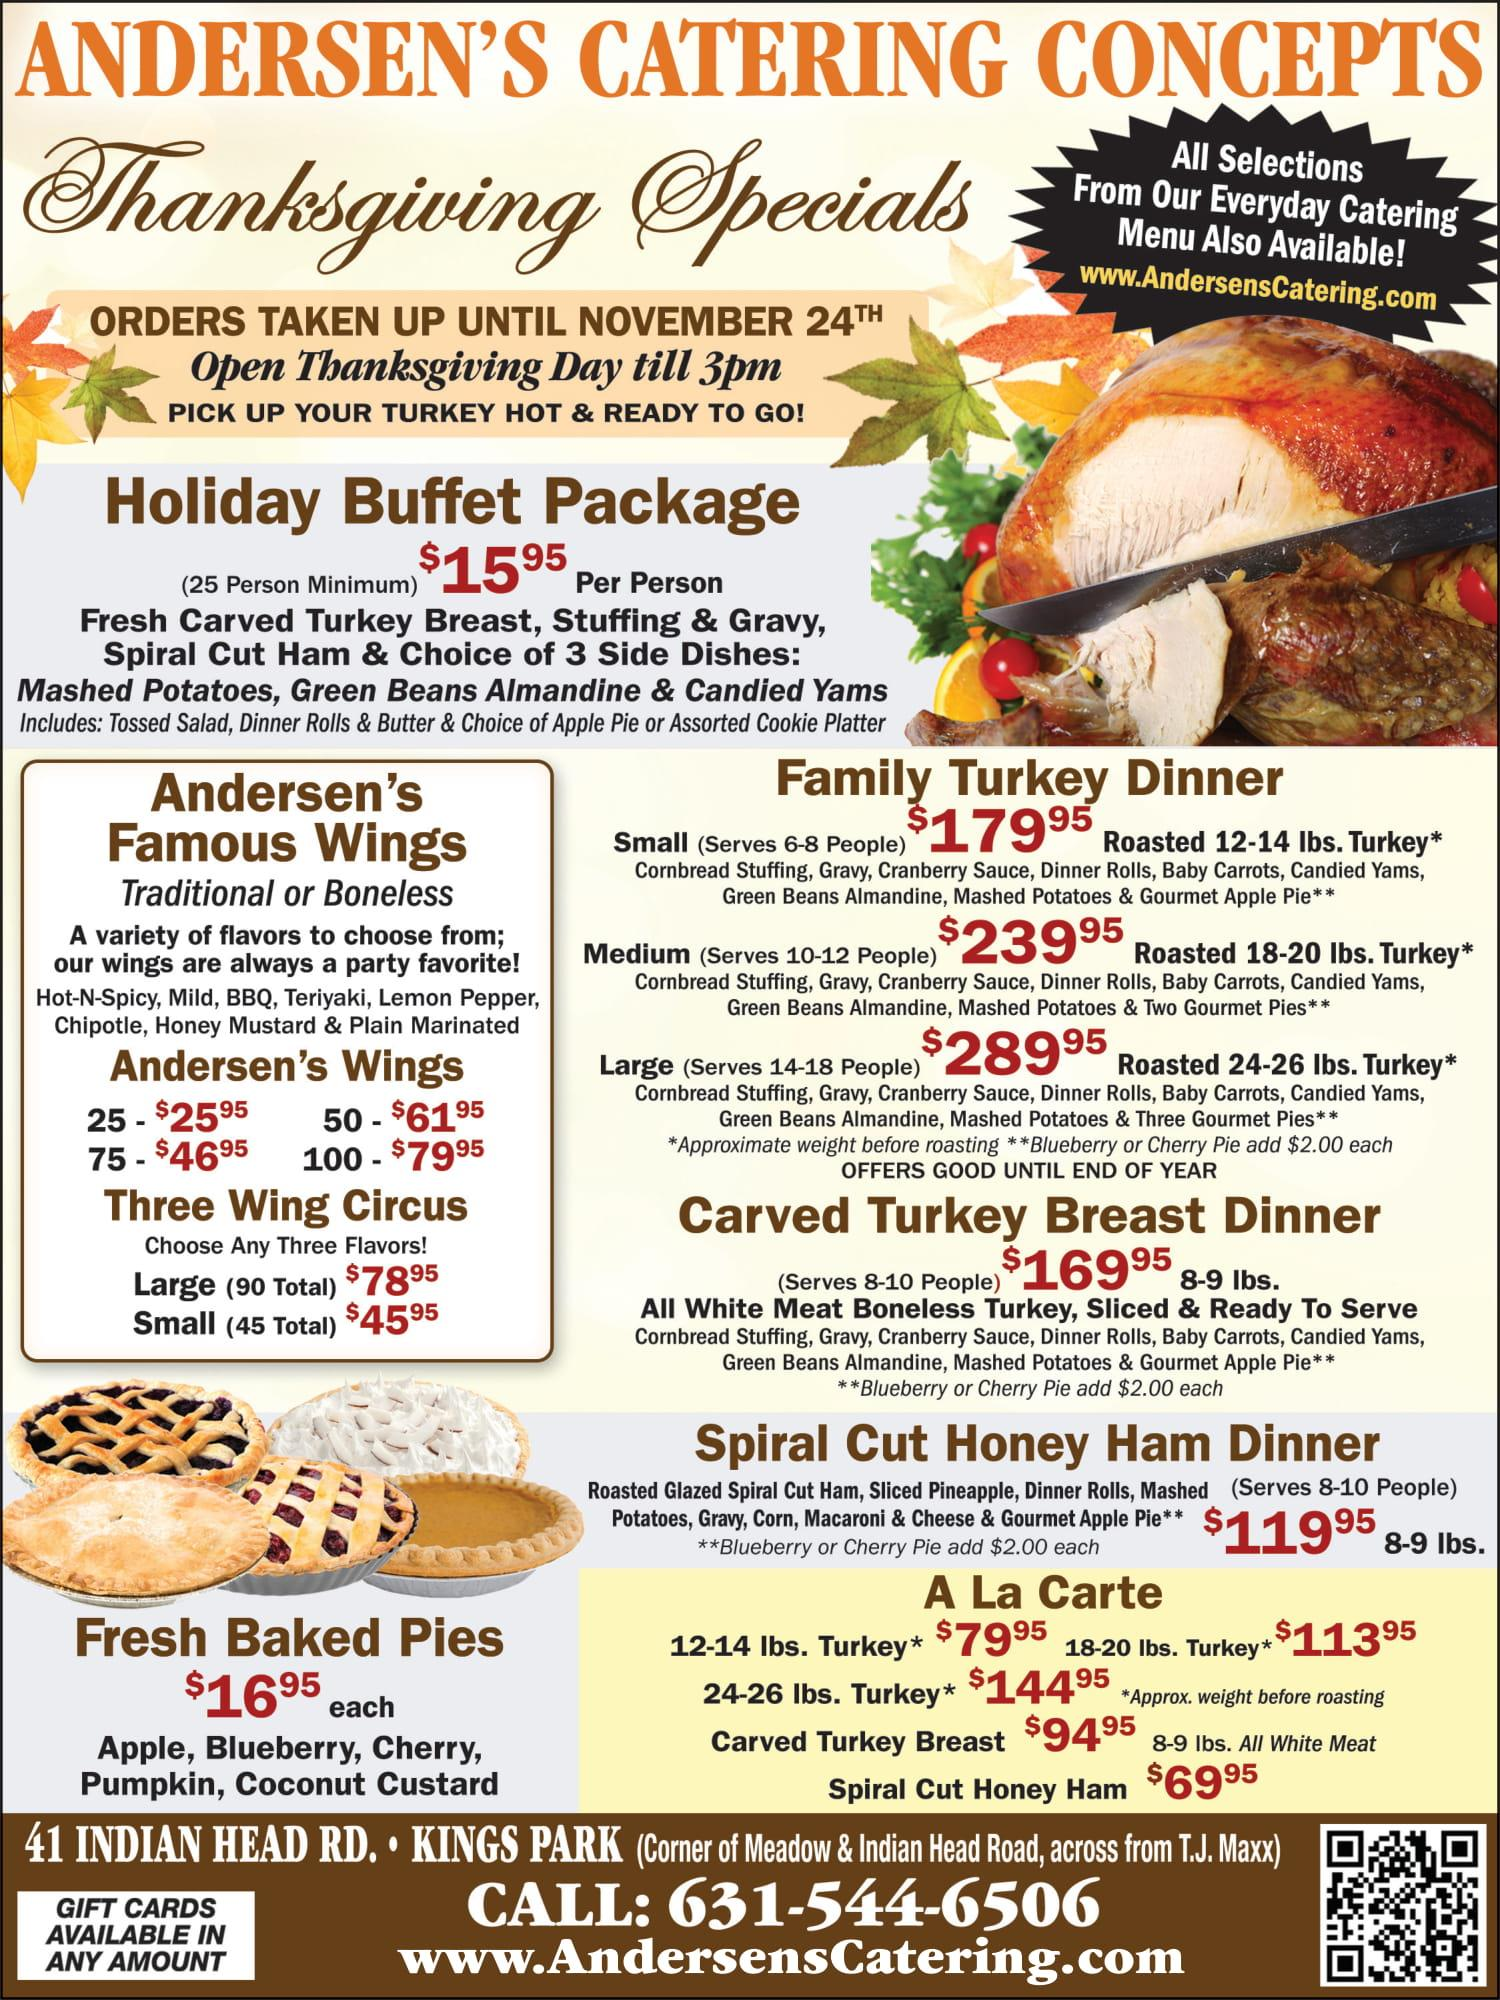 Anderson's catering concepts. All selections from our everyday catering menu also available. www.andersonscatering.com. Thanksgiving specials. Orders taken up until November 24th open Thanksgiving day till 3pm. Pick up your turkey hot and ready to go. Holiday buffet package. (25 person minimum) $15.95 per person. Fresh carved turkey breast, stuffing and gravy, spiral cut ham & choice of 3 side dishes: mashed potatoes, green beans almandine & candied yams. Includes tossed salad, dinner rolls and butter and choice of apple pie or assorted cookie platter. Family turkey dinner: small (serves 6-8 people) $179.95 roasted 12 – 14 ibs turkey*, cornbread stuffing, gravy, cranberry sauce, dinner rolls, baby carrots, candied yams, green beans almandine, mashed potatoes and gourmet apple pie **(blueberry or cherry pie adds $2.00 each) | Medium (serves 10-12 people) $239.95 roasted 14 – 20 ibs turkey*, cornbread stuffing, gravy, cranberry sauce, dinner rolls, baby carrots, candied yams, green beans almandine, mashed potatoes and 2 gourmet apple pies **(blueberry or cherry pie adds $2.00 each) | Large (serves 14-18 people) $289.95 roasted 24-26 ibs turkey*, cornbread stuffing, gravy, cranberry sauce, dinner rolls, baby carrots, candied yams, green beans almandine, mashed potatoes and three gourmet apple pies **(blueberry or cherry pie adds $2.00 each) (Offers good until the end of year). Carved turkey breast (serves 8-10 people) $169.95 roasted 8-9 ibs. All white meat boneless turkey, sliced and ready to serve, cornbread stuffing, gravy, cranberry sauce, dinner rolls, baby carrots, candied yams, green beans almandine, mashed potatoes and gourmet apple pie **(blueberry or cherry pie adds $2.00 each). Spiral cut honey ham dinner roasted glazed spiral cut ham, sliced pineapple, dinner rolls, mashed potatoes, gravy, corn, macaroni and cheese and gourmet apple pie**(blueberry or cherry pie adds $2.00 each) $119.95 8-9 ibs. Andersen's famous wings: traditional or boneless- a variety of flavors to choose from our wings are always a party favorite. Hot-n-spicy, mild, BBQ, teriyaki, lemon pepper, chipotle, honey mustard and plain marinated. Andersen's wings: 25 - $25.95 | 50 -$61.95 | 75 - $46.95 | 100 - $79.95. Three wing circus choose any three flavors! Large (90 total) $78.95 | Small (45 total) 445.95. Fresh baked pies $16.95 each: apple, blueberry, cherry, pumpkin, coconut custard. A la carte 12-14 ibs turkey* $79.95 | 18-20 ibs turkey* $113.95 | 24-26 ibs turkey* $144.95 (*approx.. weight before roasting) | Carved turkey breast $94.95 (8-9 ibs all white meat) | Spiral cut honey ham $69.96. 41 indian head road, kings park (corner of meadow and Indian head road, across from T.J. Maxx) call 631-544-6506. Gift cards available in any amount.